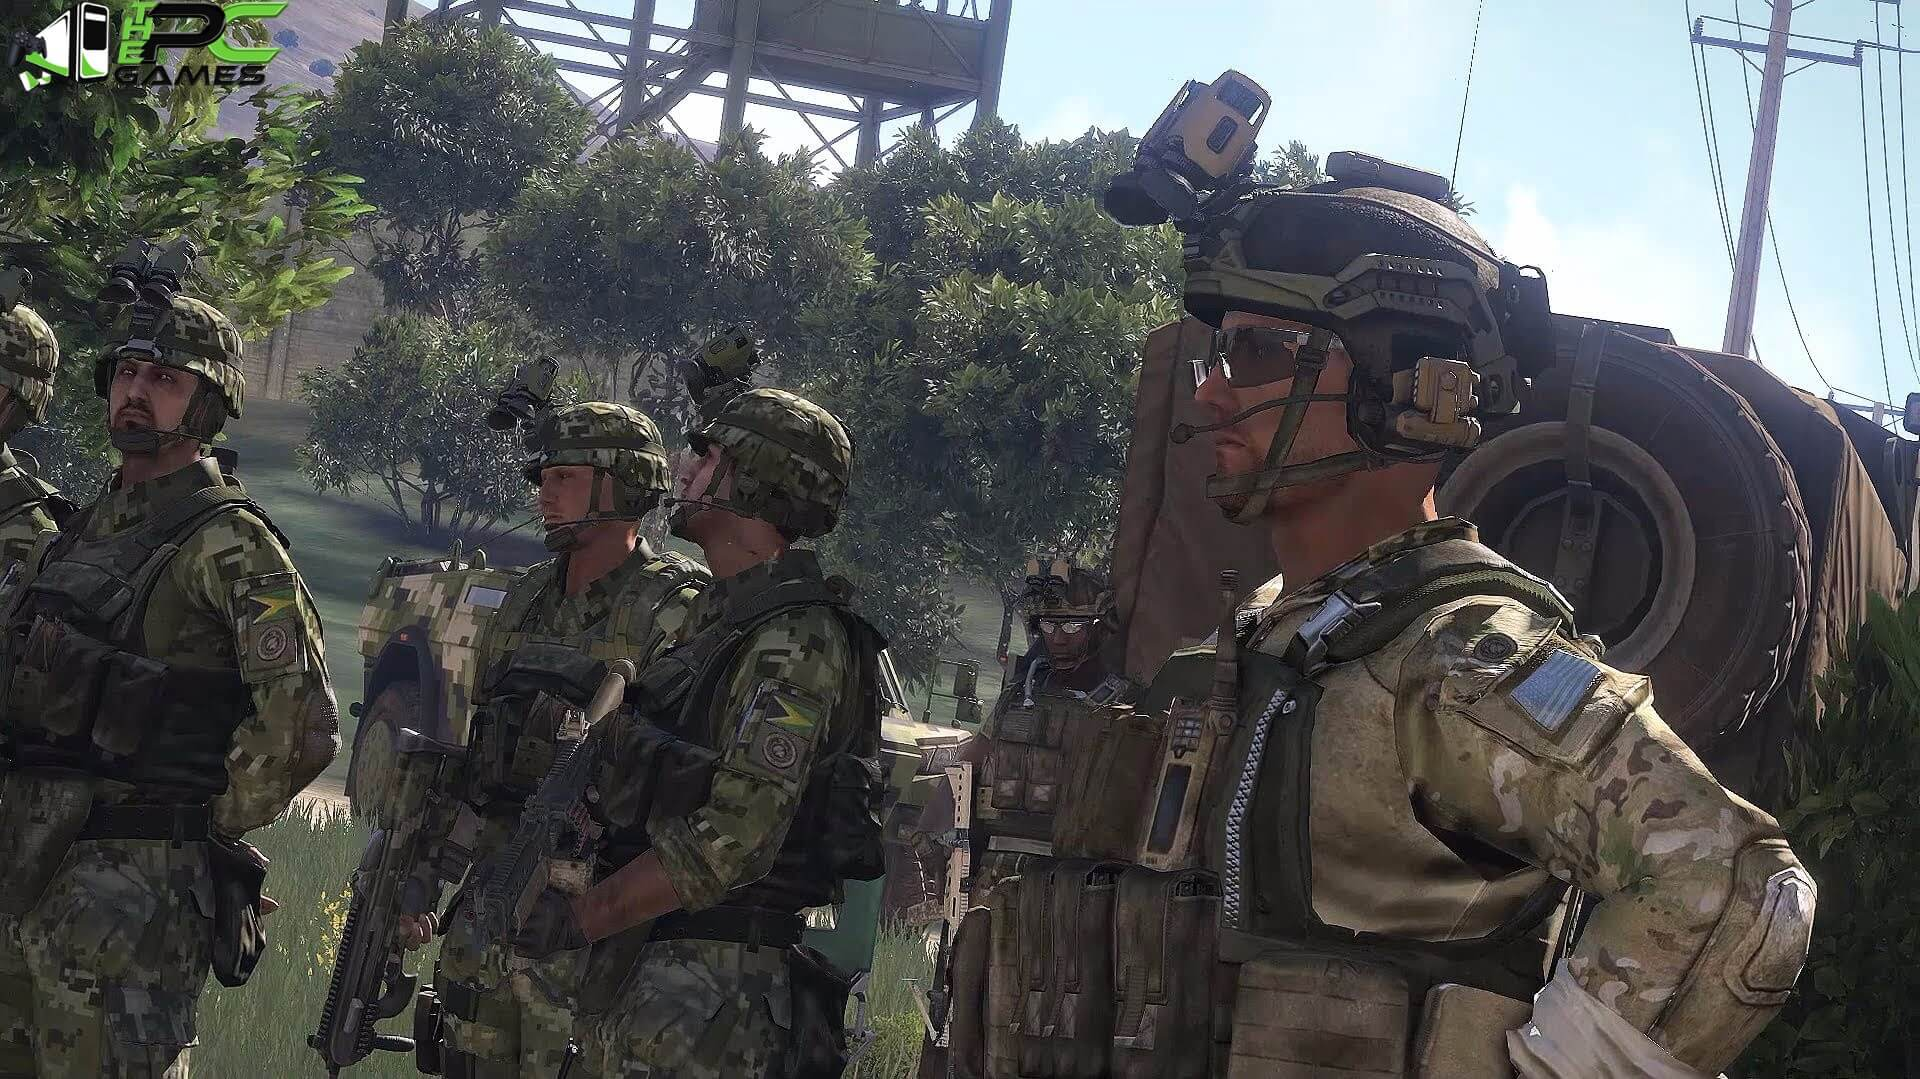 arma 3 system requirements